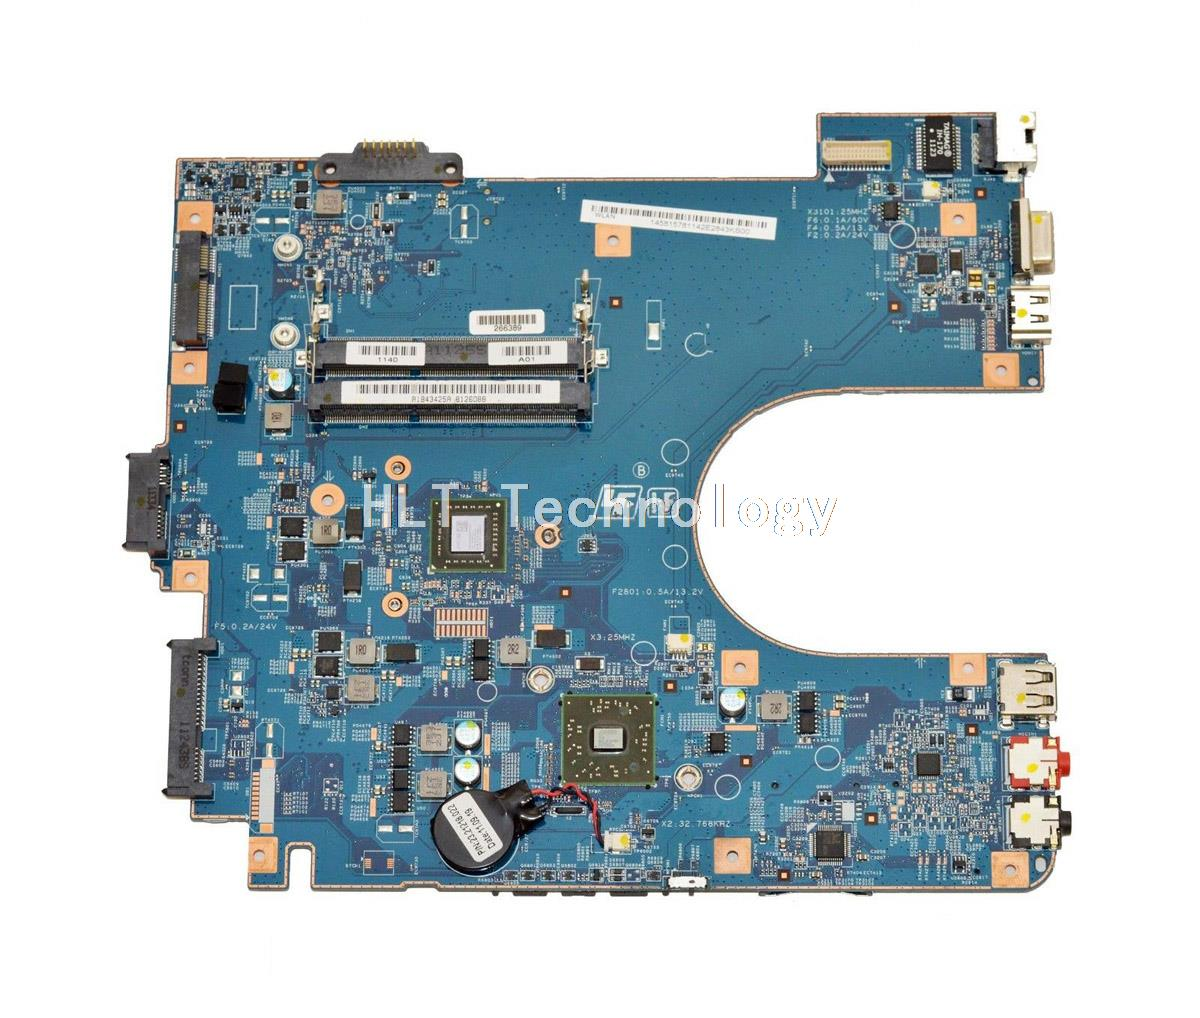 MBX 252 laptop Motherboard For Sony MBX-252 48.4MS02.011 A1843425A integrated graphics card 100% fully tested